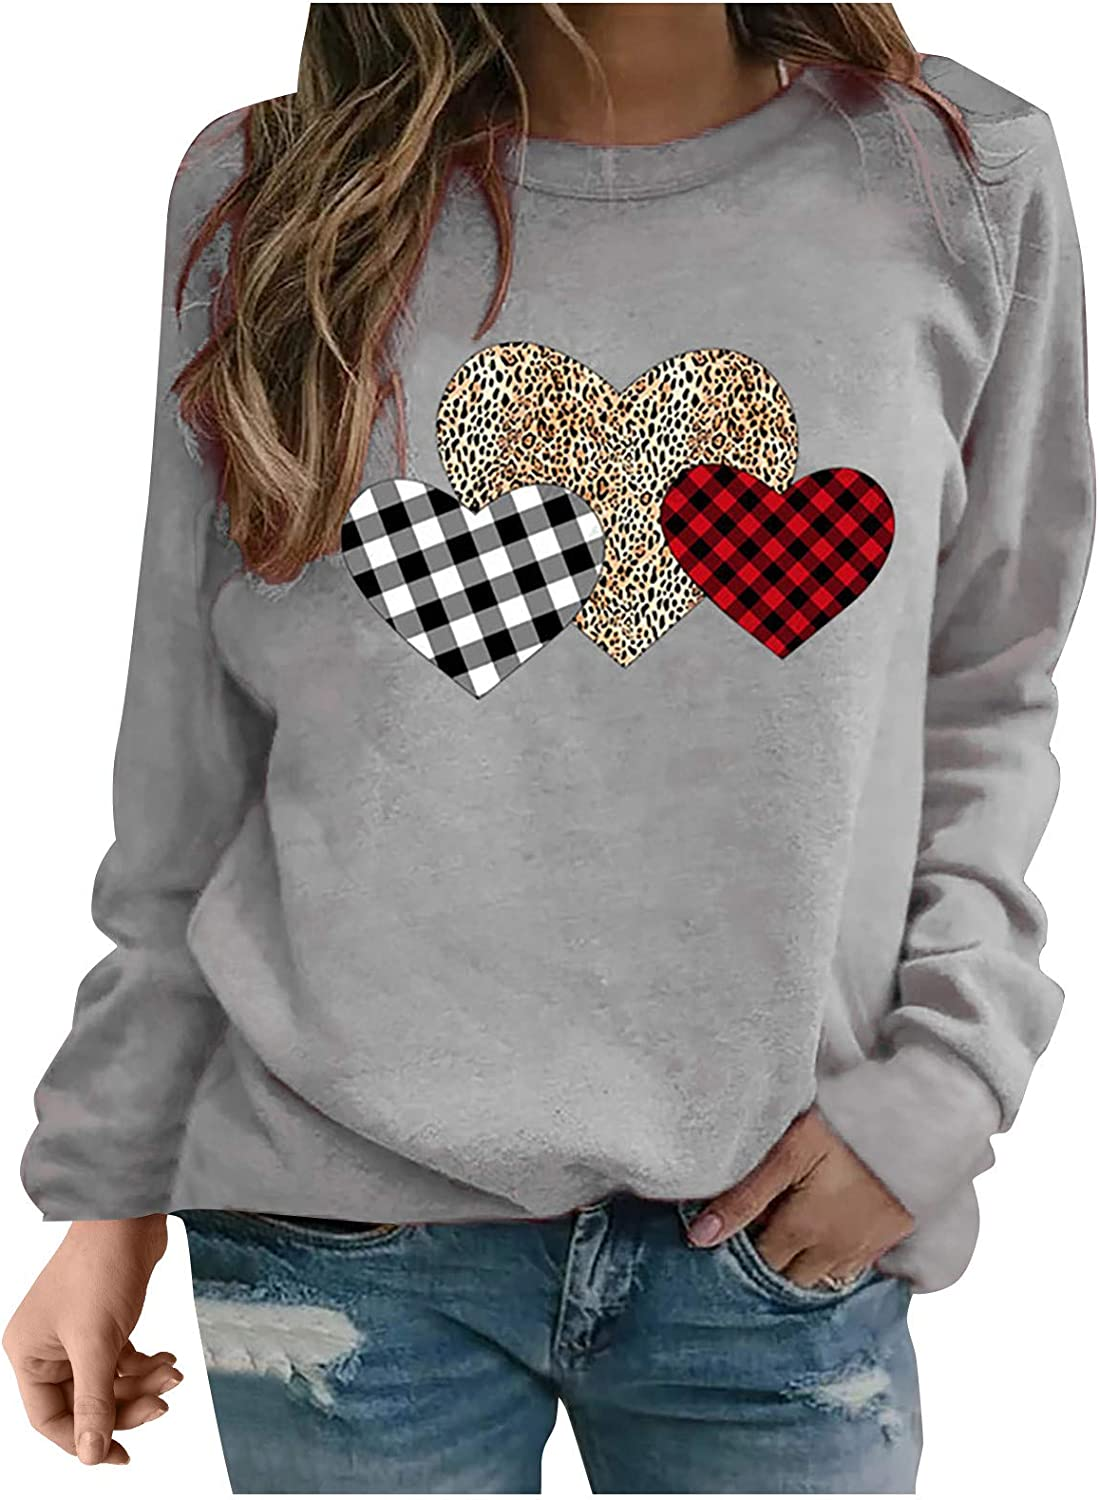 Womens Casual Tops Long Sleeve, Hearts Leopard Crew Neck Cotton Blouses Sexy 202 Love Tees Shirts 3XL Gifts